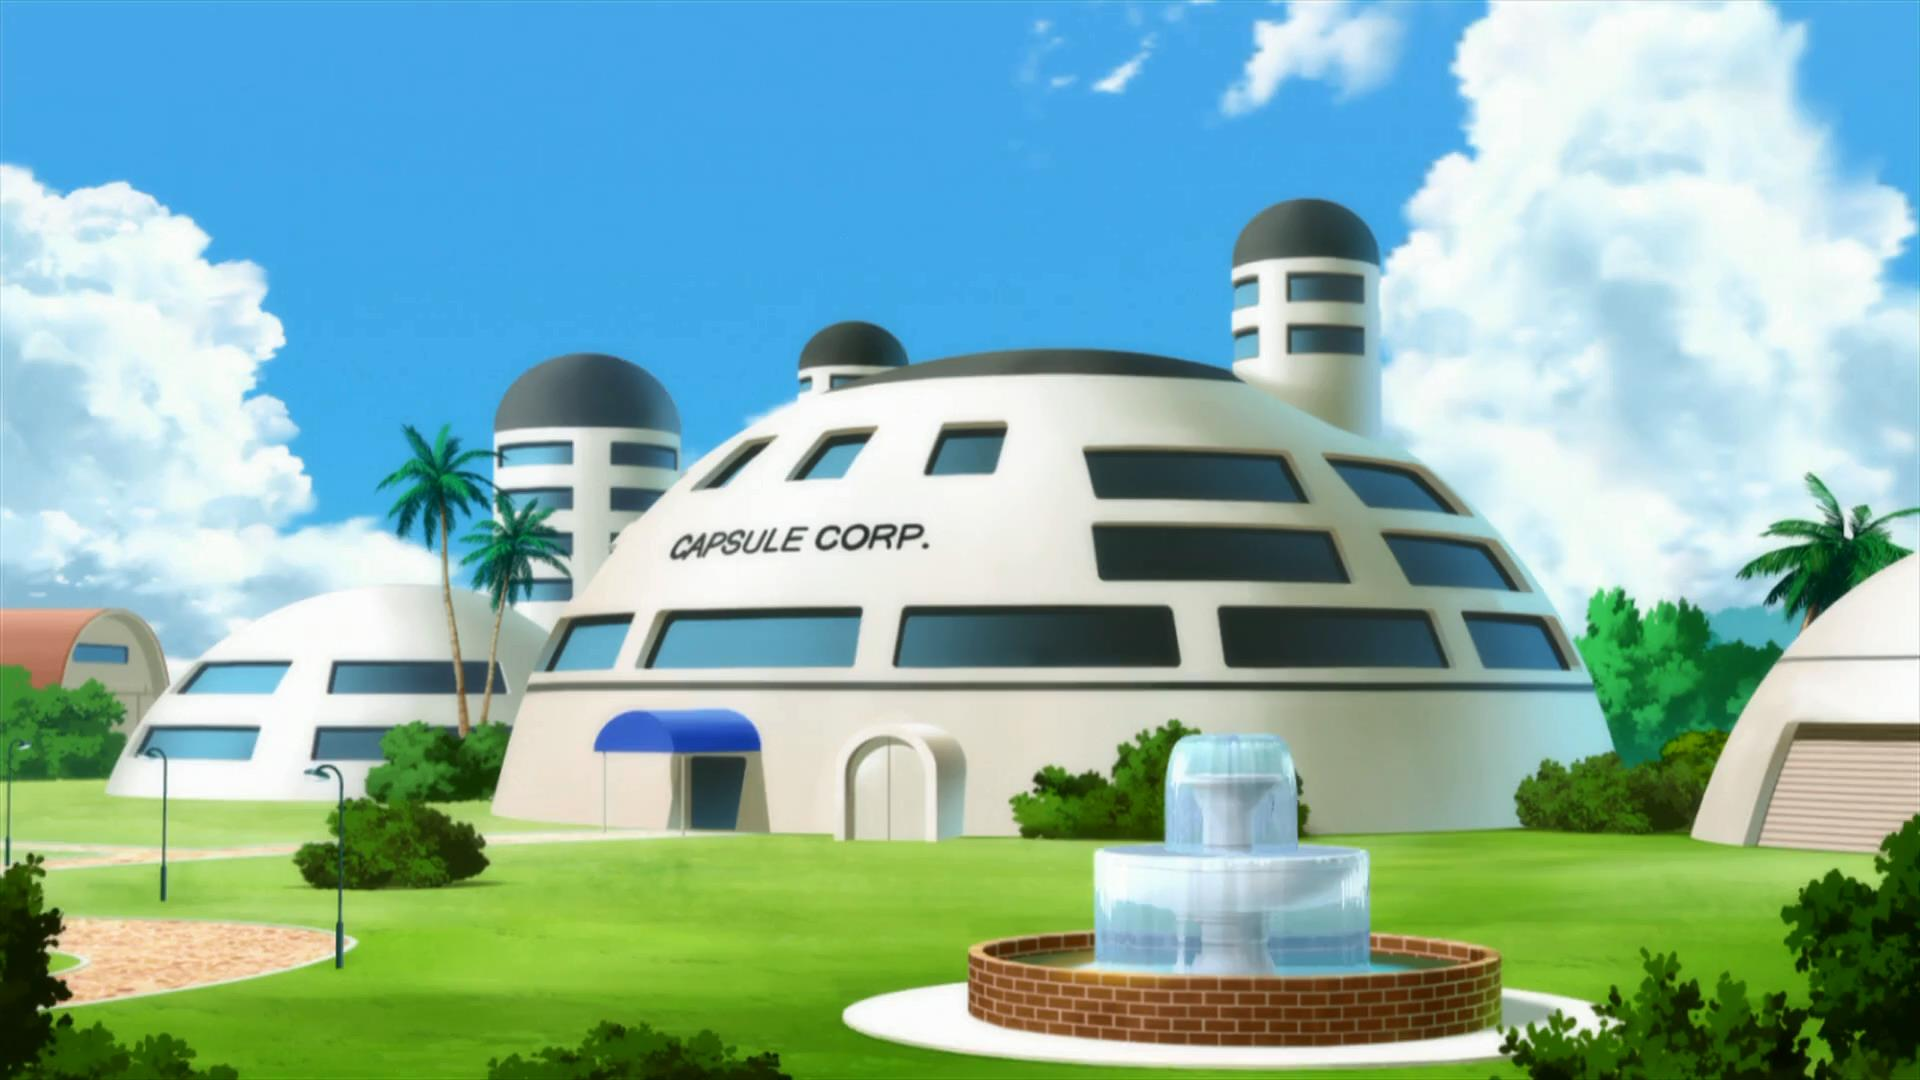 Capsule corp hd wallpaper background image 1920x1080 - Dragon ball super background music mp3 download ...